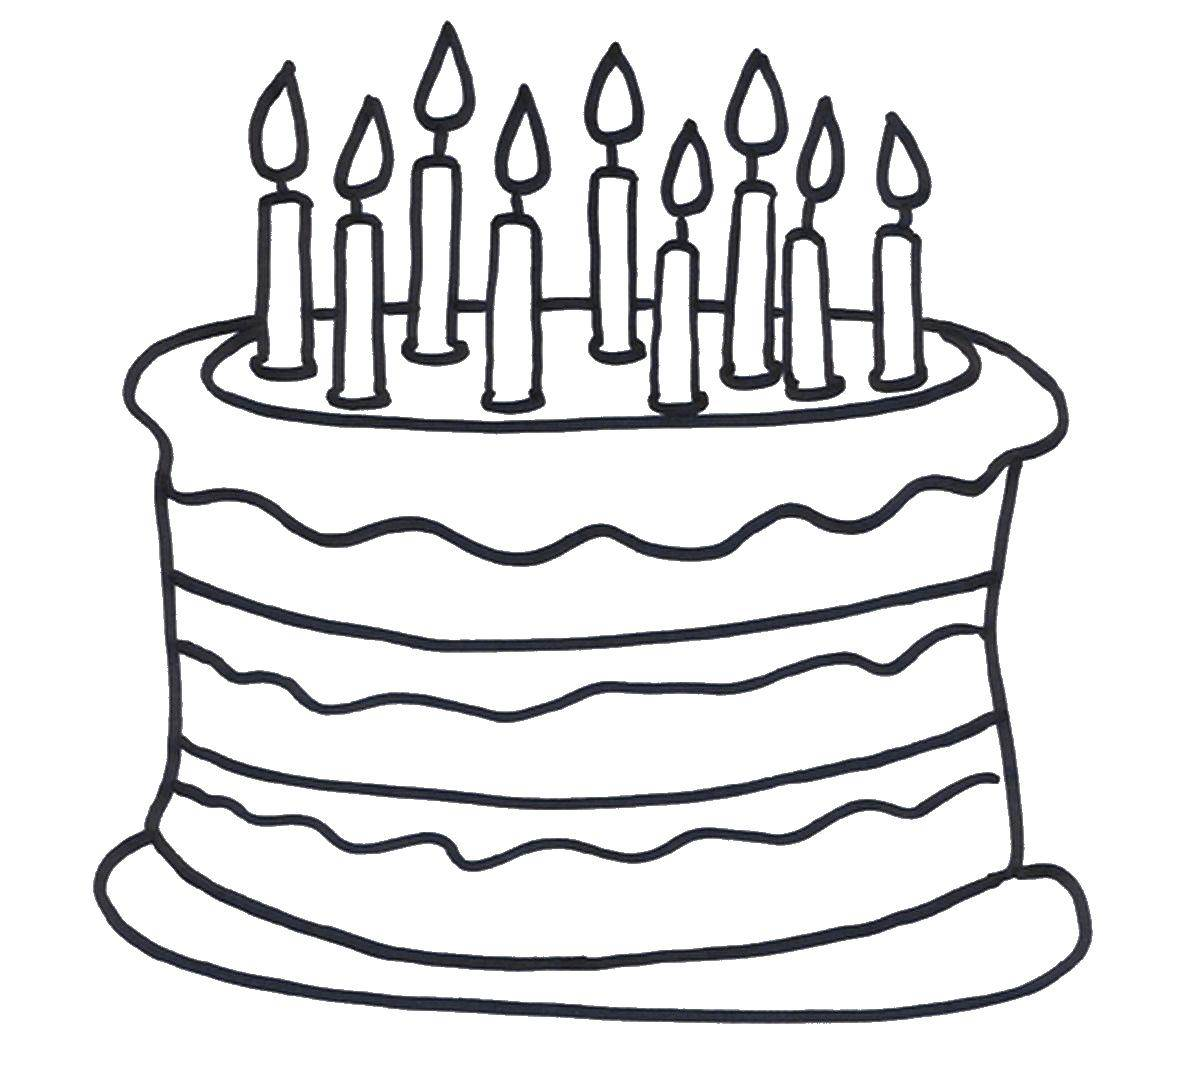 Coloring sheet cakes Download the congratulation 8 March card.  Print